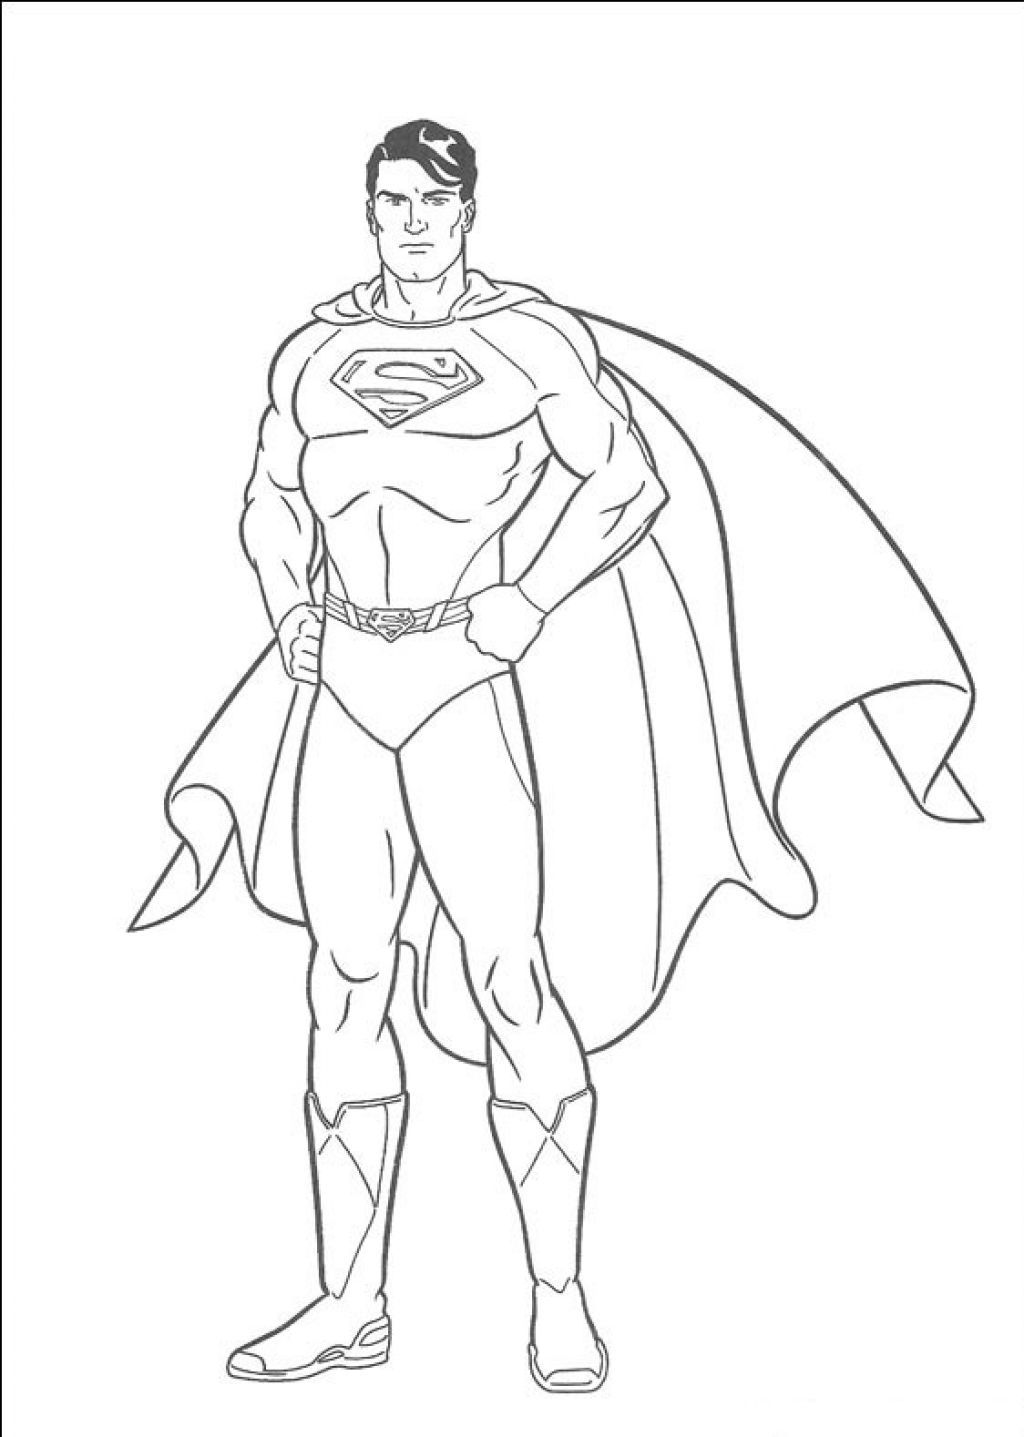 Coloring pages superman sketch ideas coloring pages superman